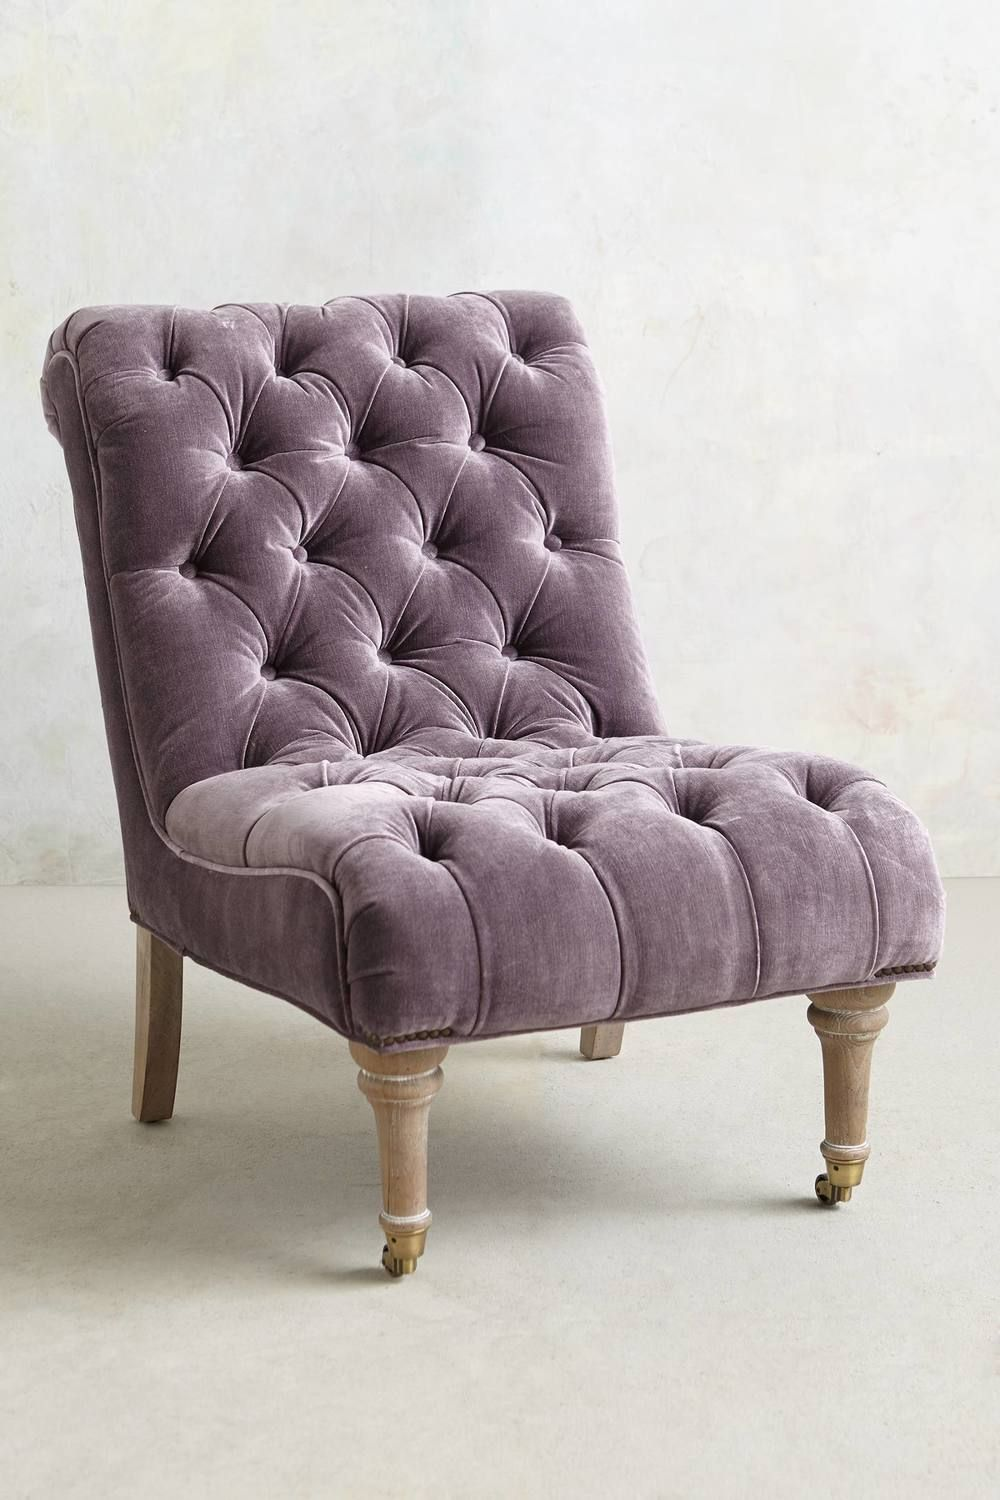 Overstuffed Late Victorian Style Pull Up Salon Or Slipper Chair